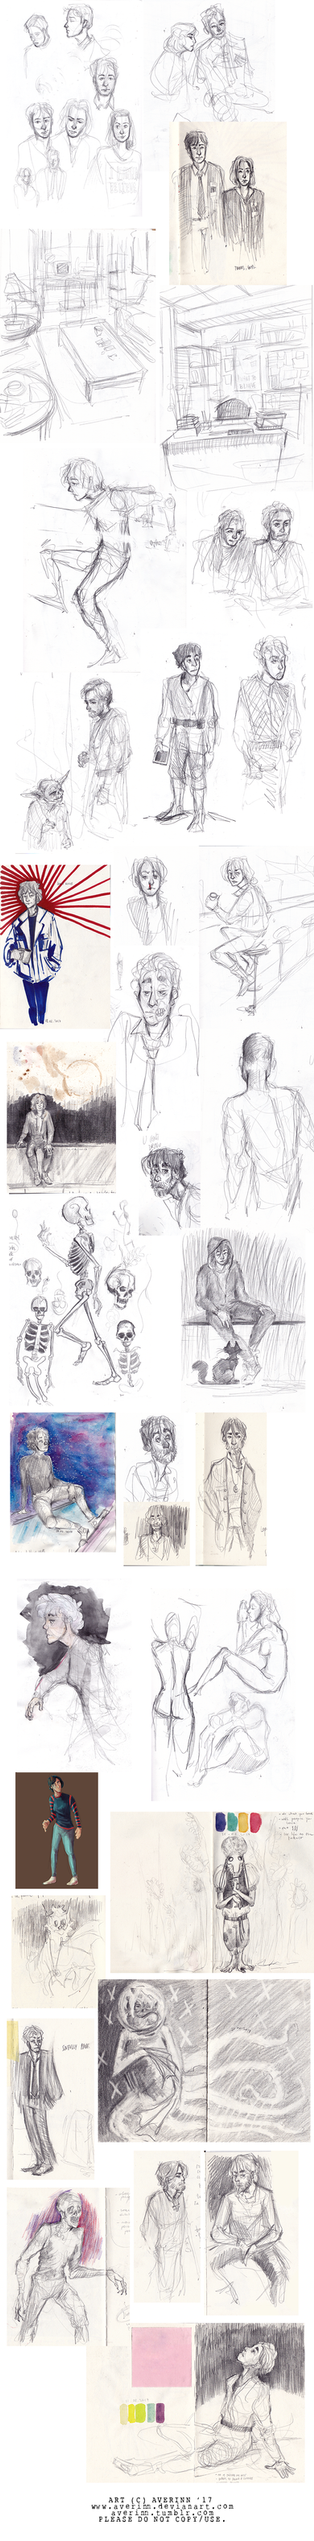 Sketchdump 005 by Averinn